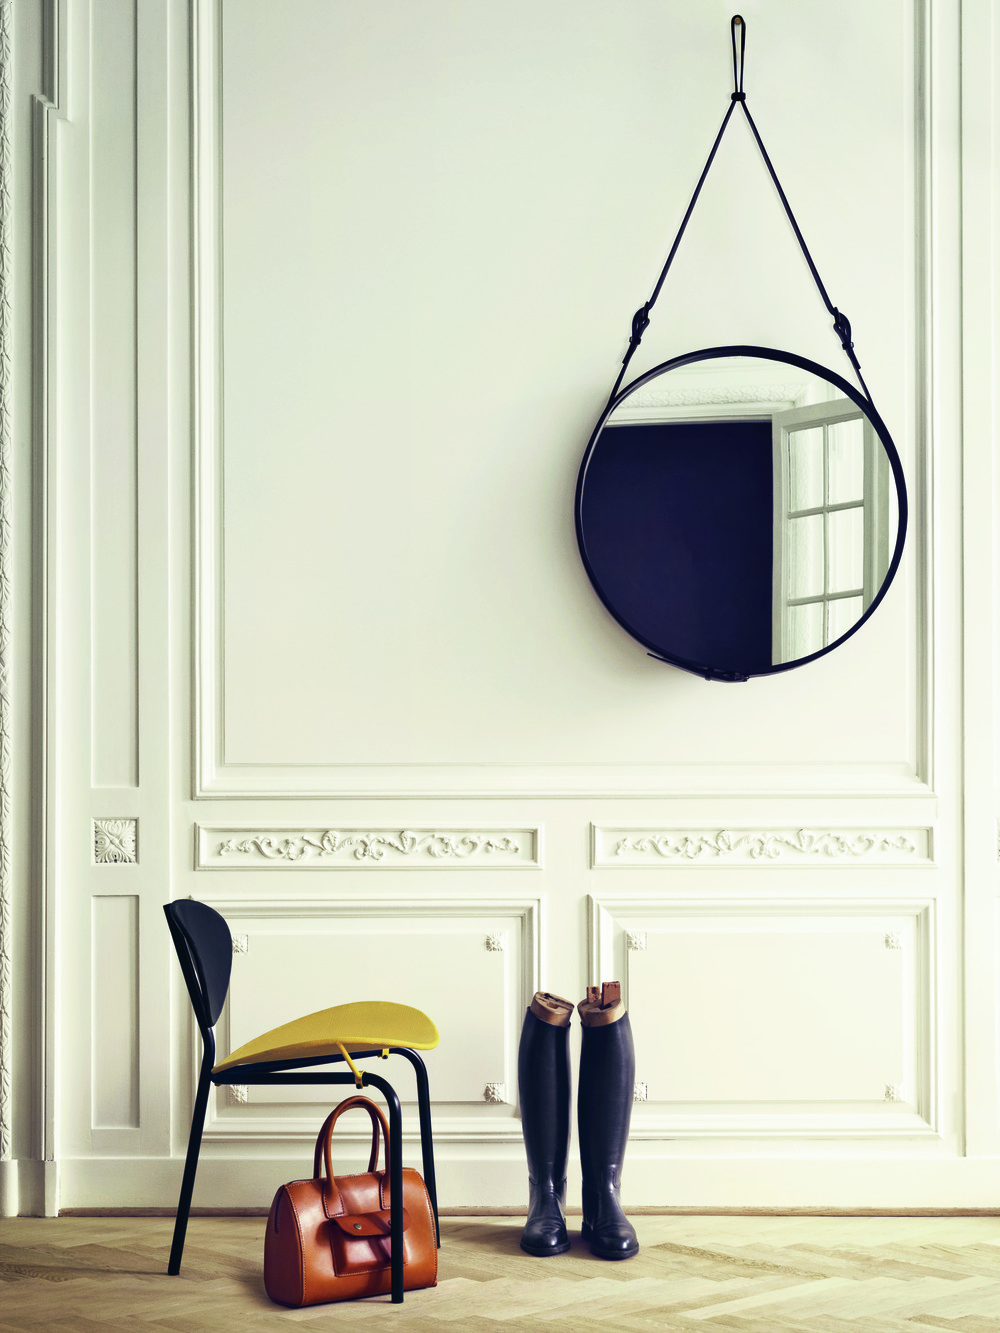 Adnet circulaire - black_Nagasaki chair - black-yellow.jpg